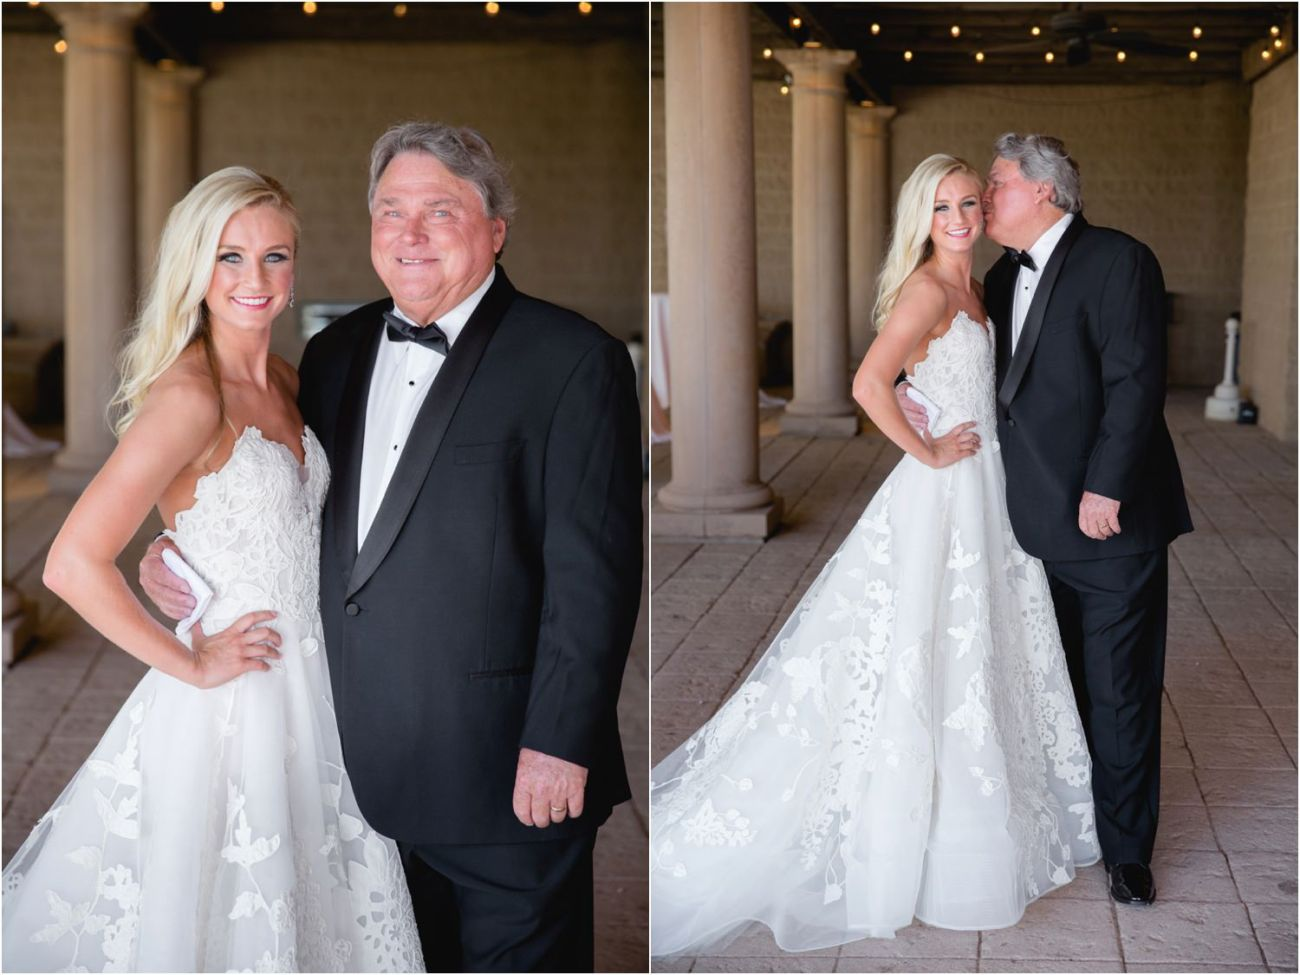 step-dad and bride